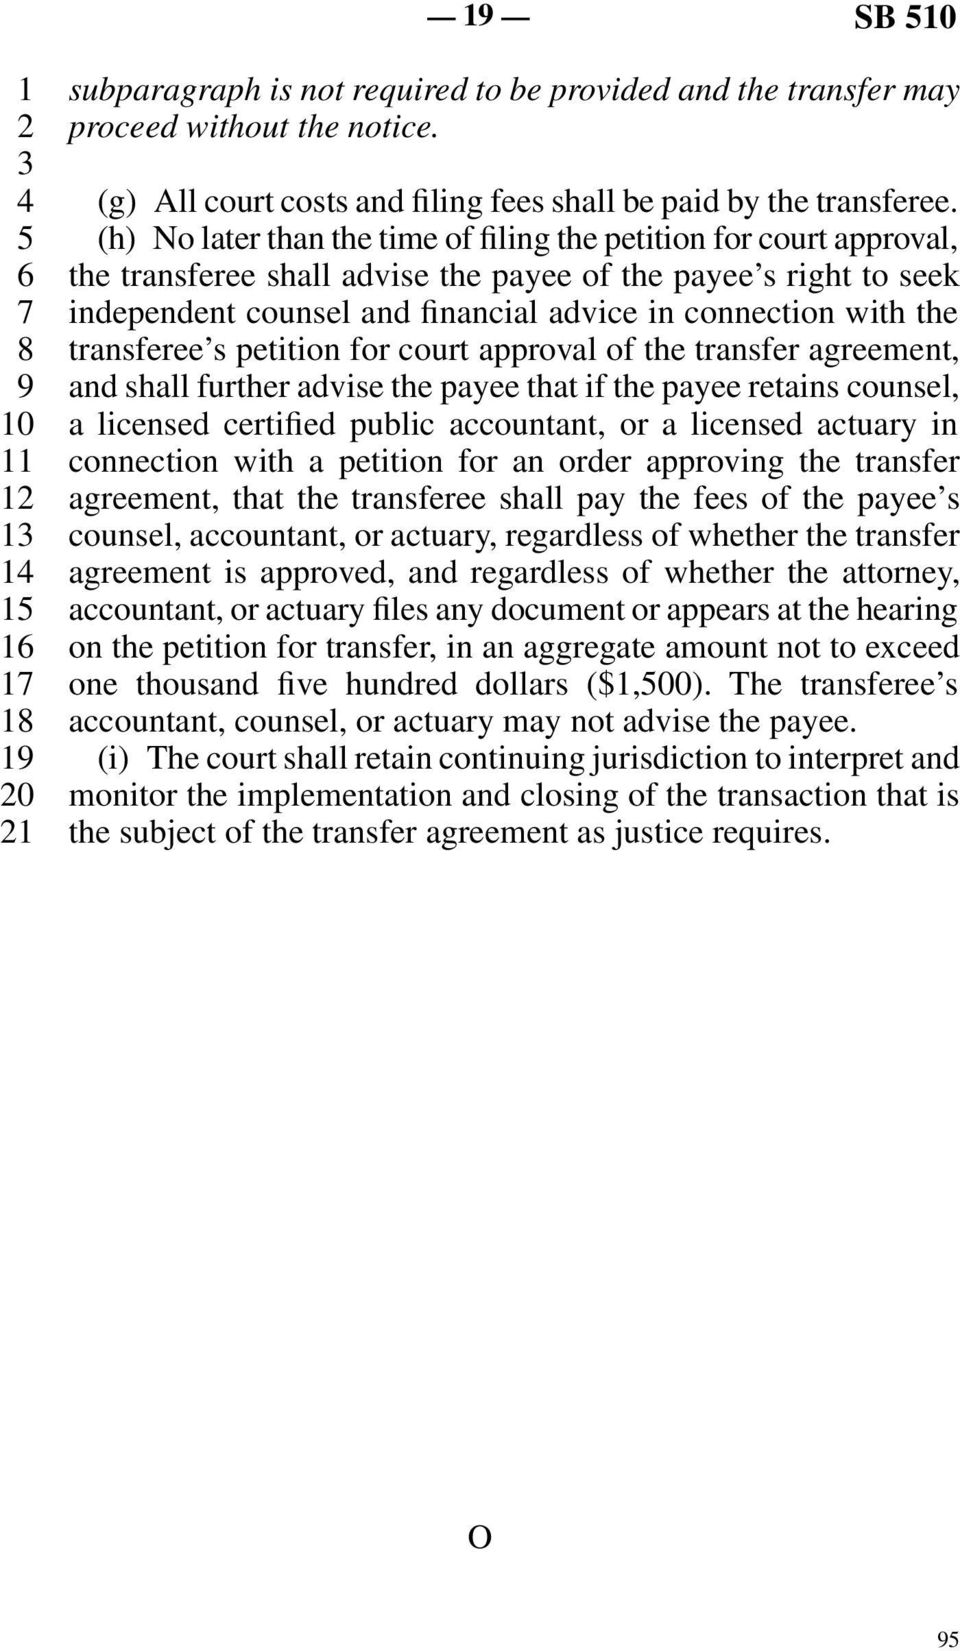 the transferee s petition for court approval of the transfer agreement, and shall further advise the payee that if the payee retains counsel, a licensed certified public accountant, or a licensed